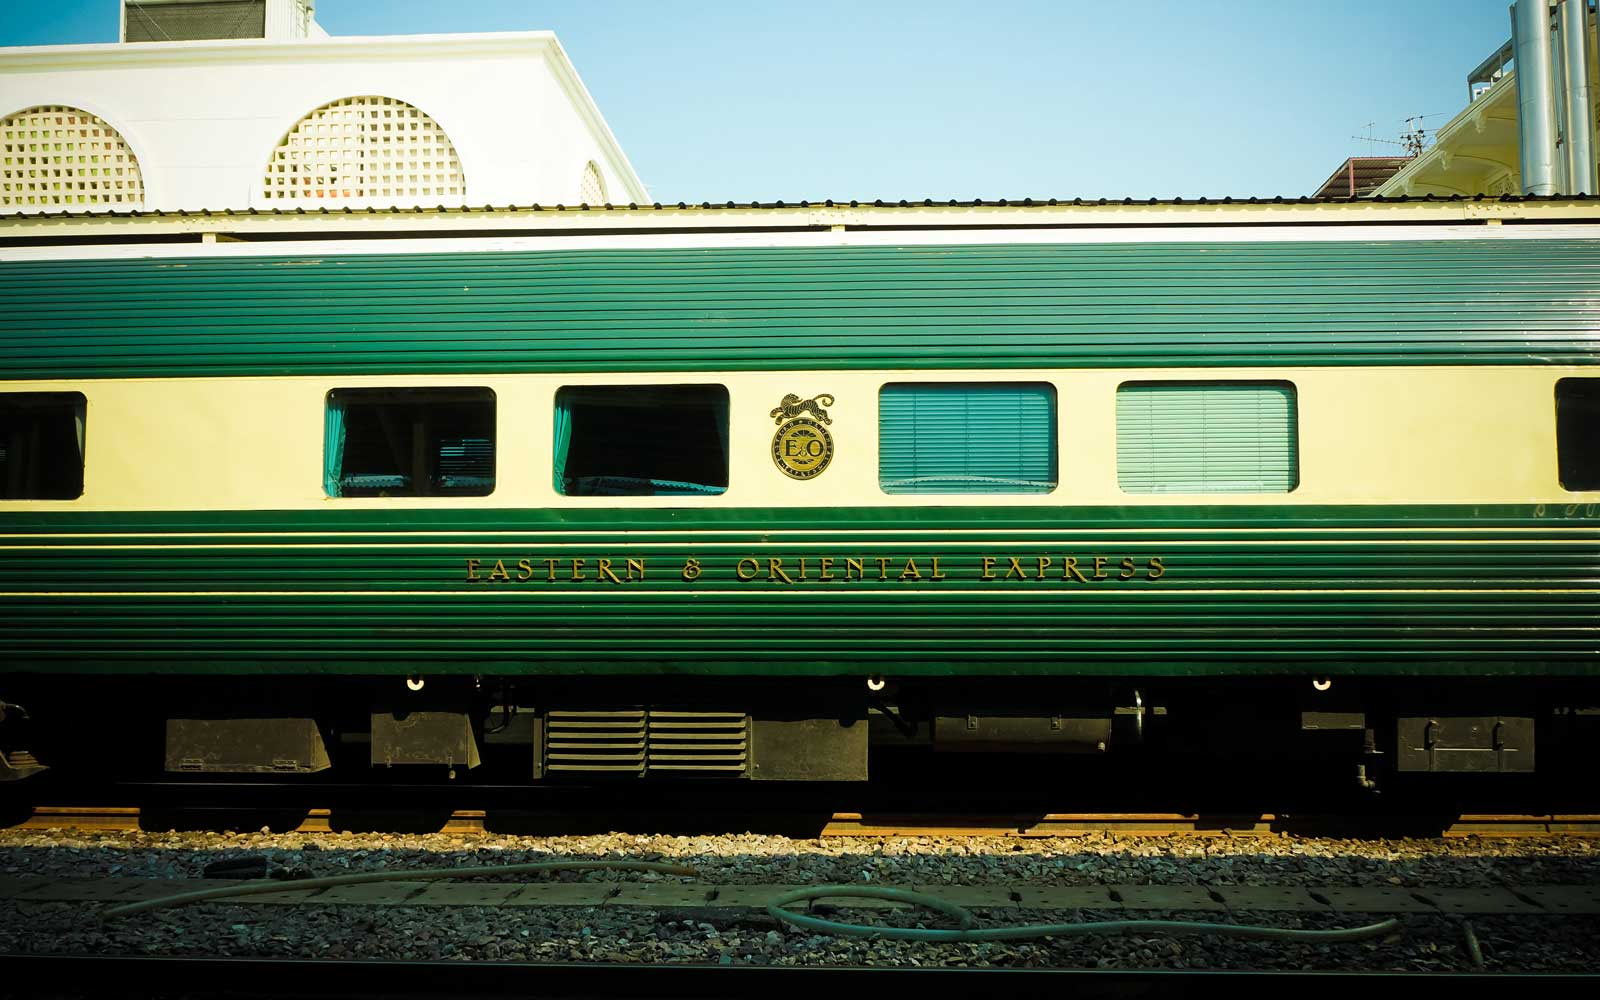 The Eastern & Oriental Express  Luxury Trains,Bangkok to Singapore in Hua Lamphong railway station